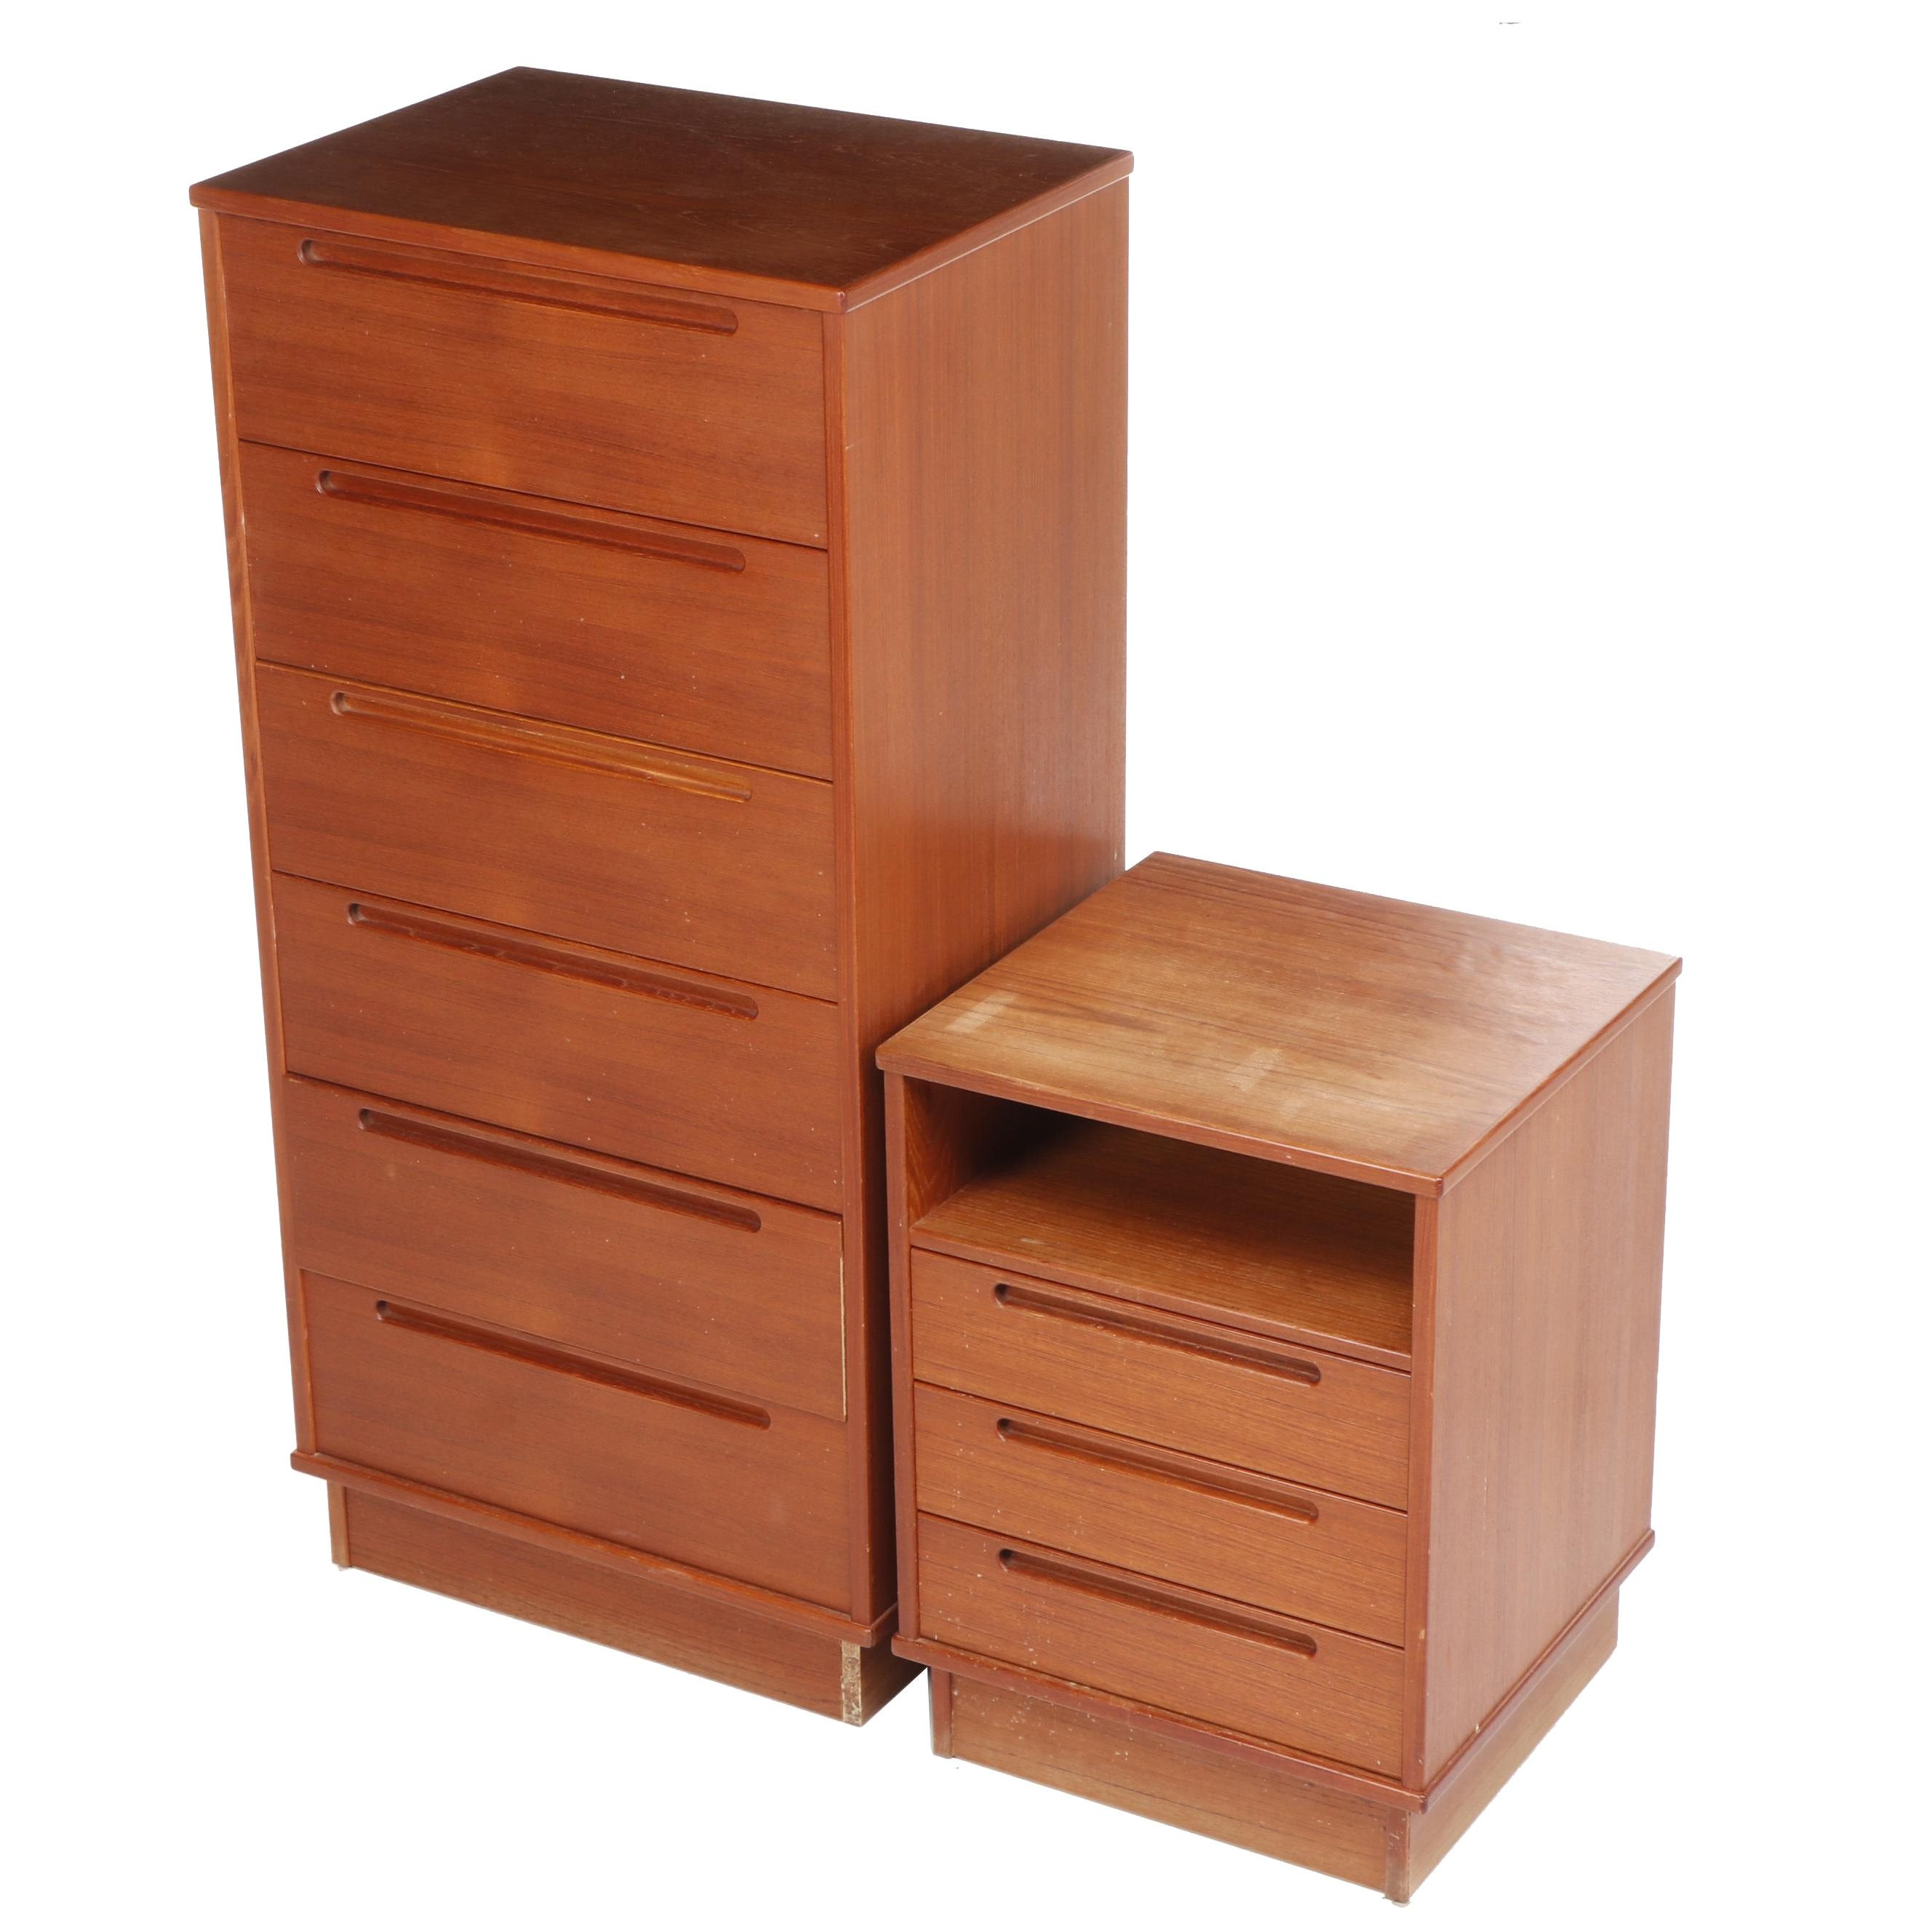 Arenkiel for Torring Danish Modern Teak Nightstand and Chest of Drawers